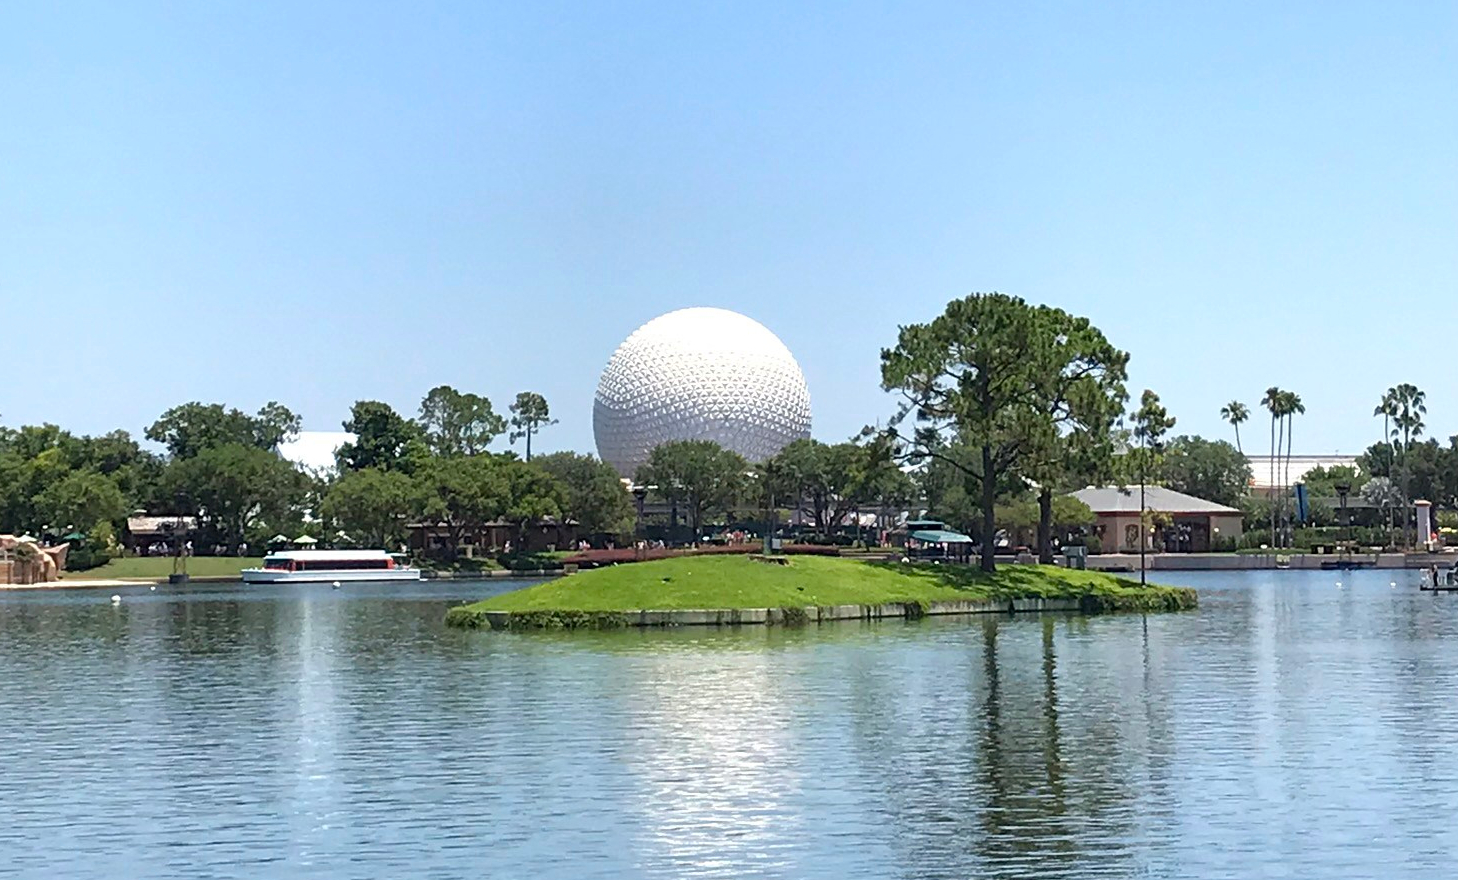 Epcot, Spaceship Earth, Food and Wine Festival